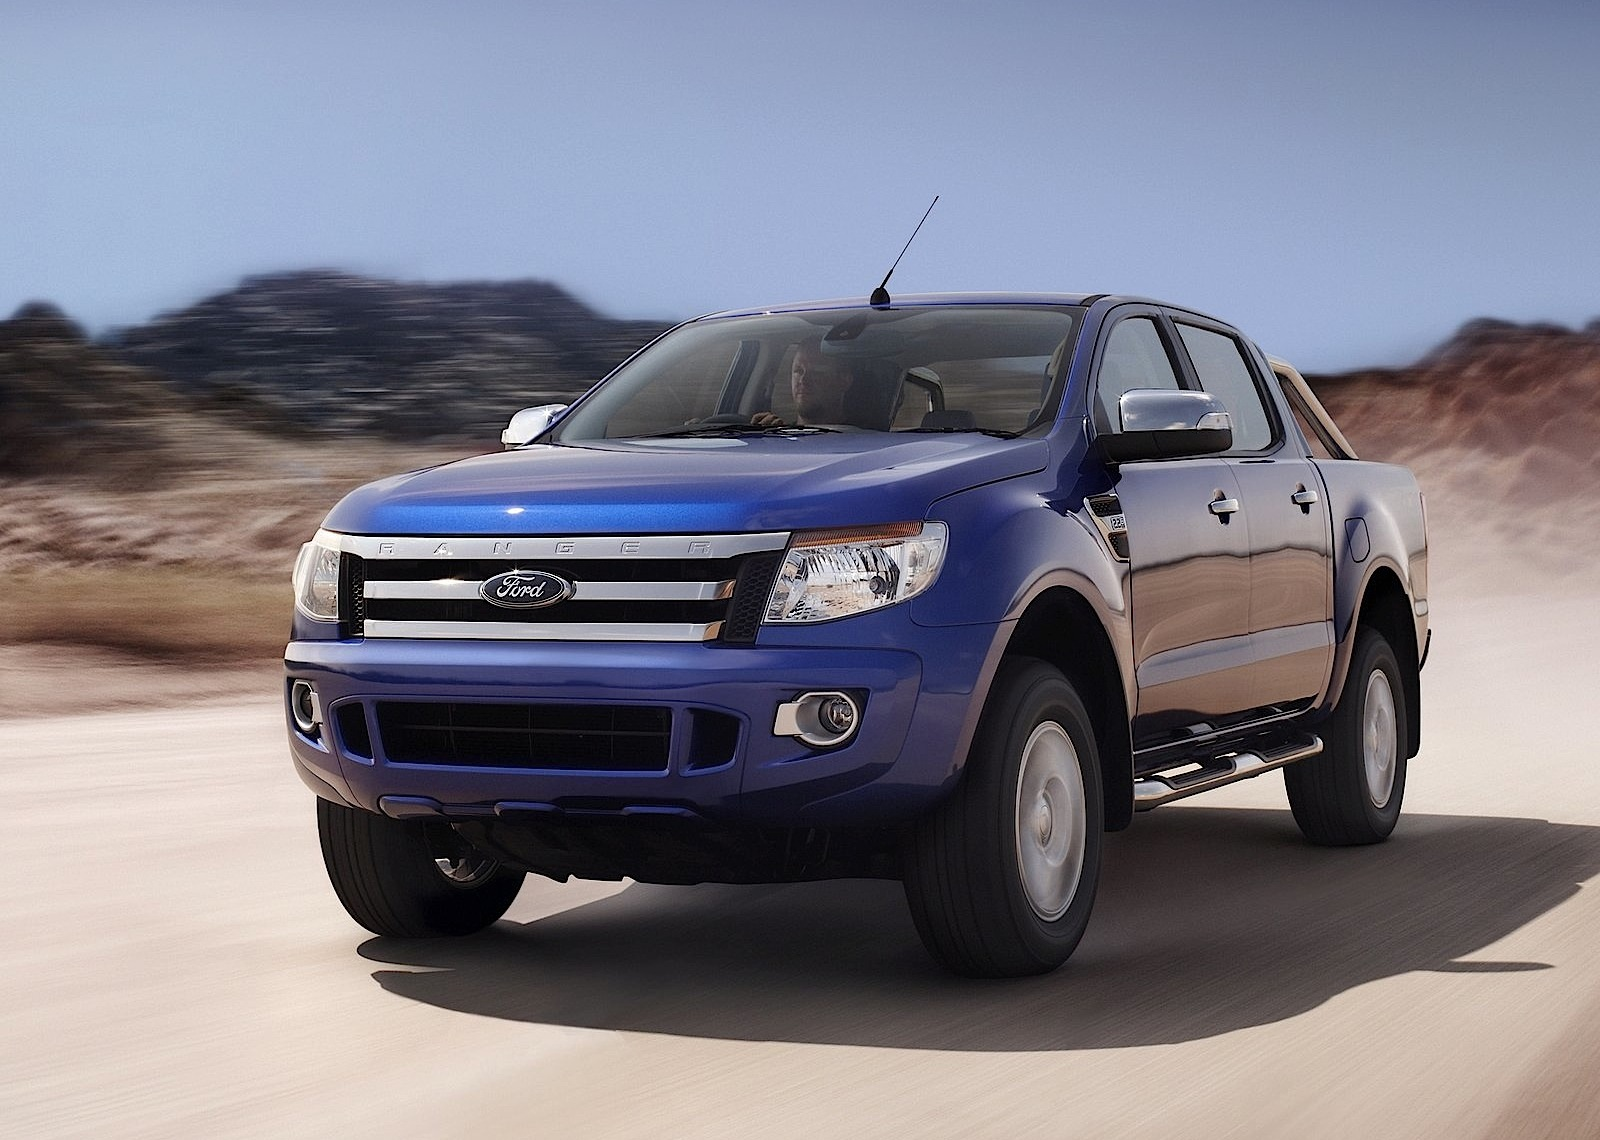 ford ranger double cab specs photos 2011 2012 2013 2014 2015 autoevolution. Black Bedroom Furniture Sets. Home Design Ideas